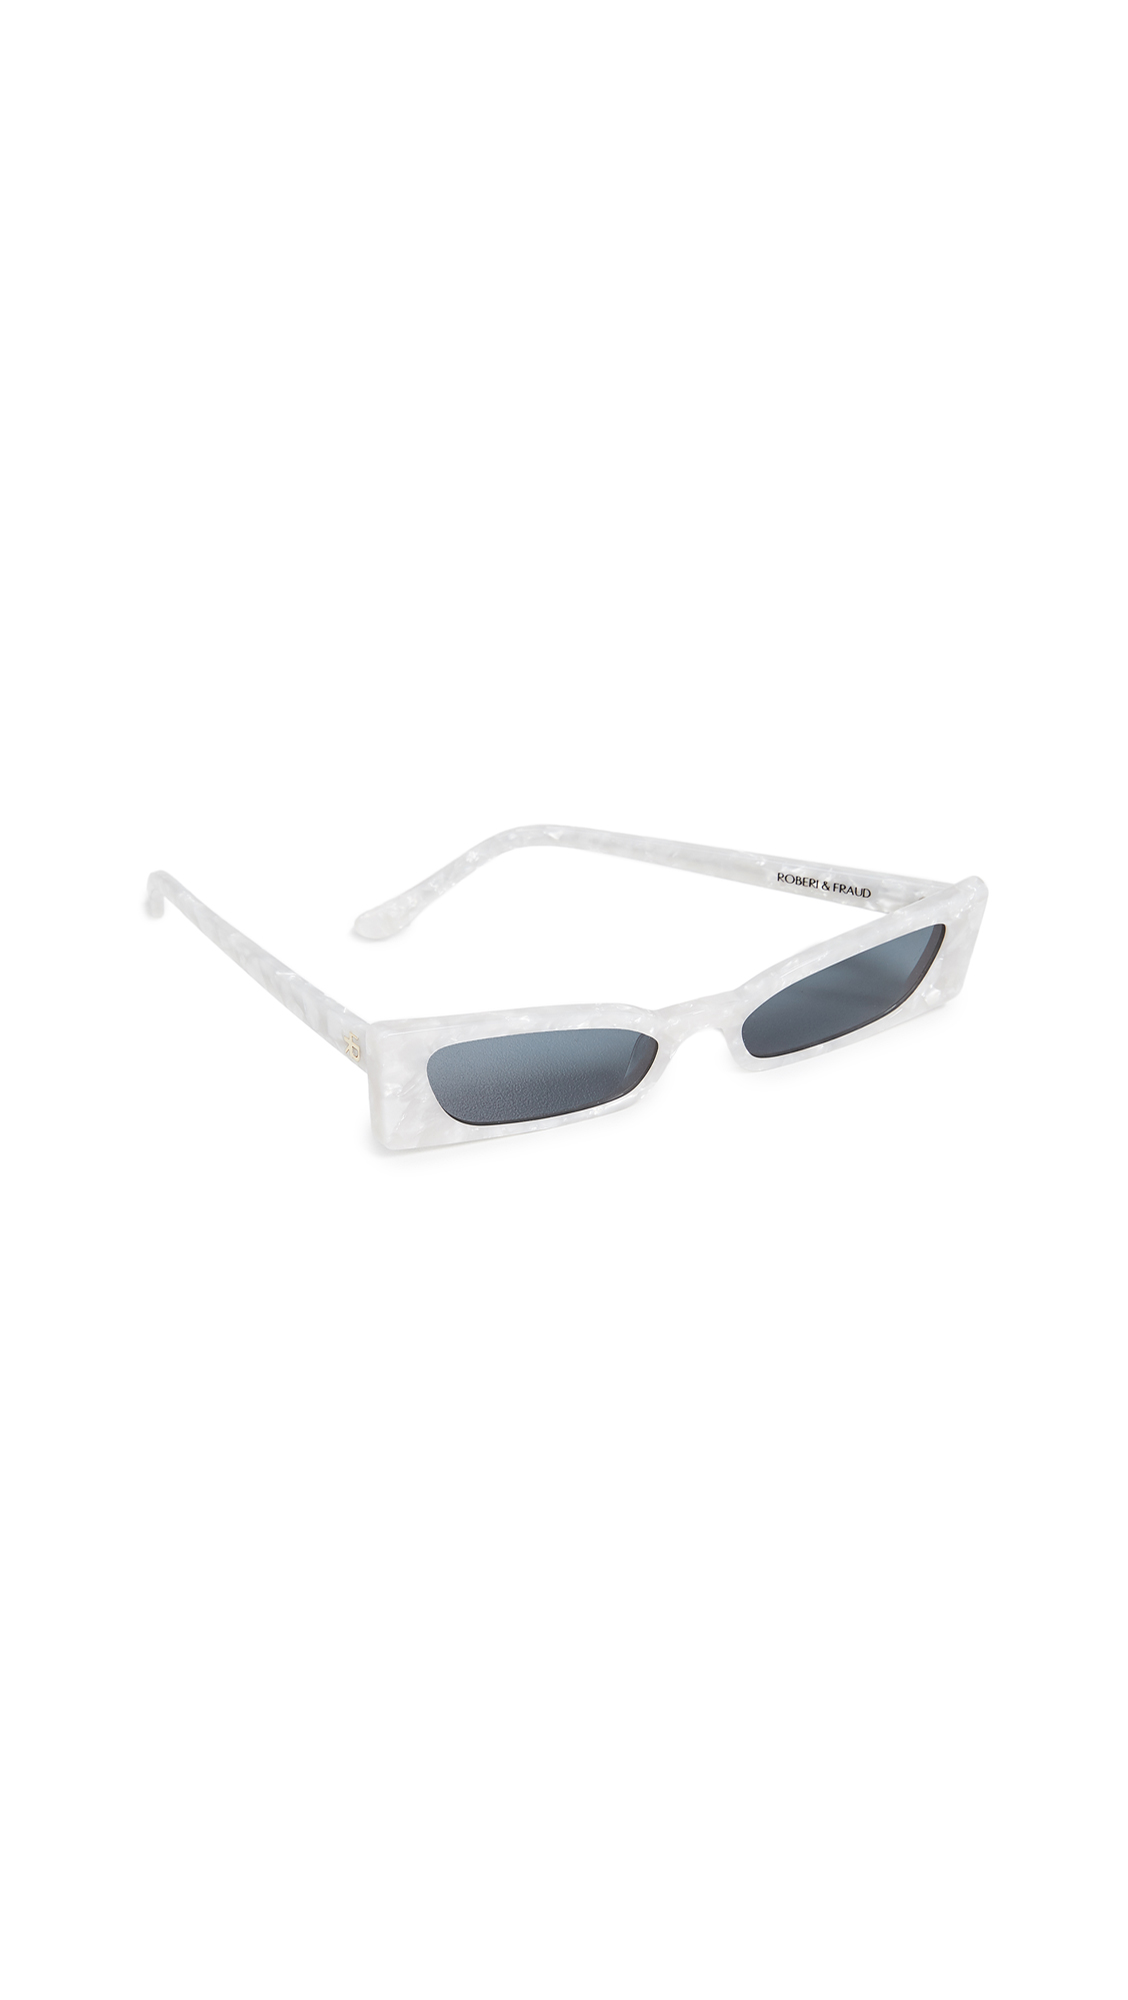 ROBERI & FRAUD Geraldine Sunglasses in White Pearl